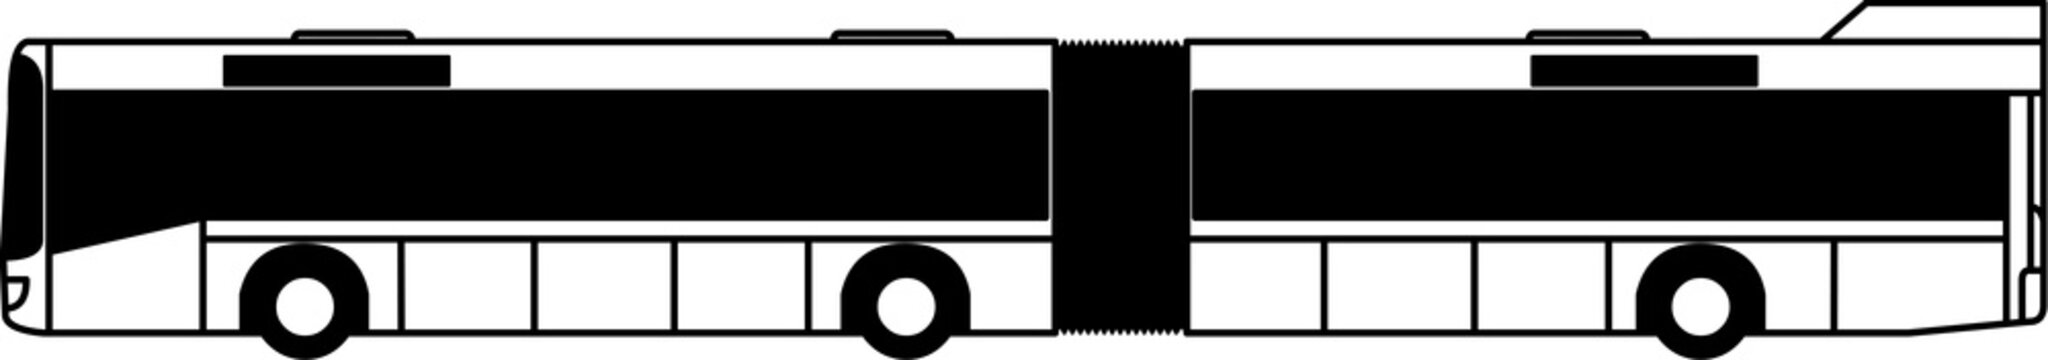 bus - articulated bus - city transport - city - transport - public transportation - icon - shape - silhouette - vector - monochrome - isolated - 6x2 - left side